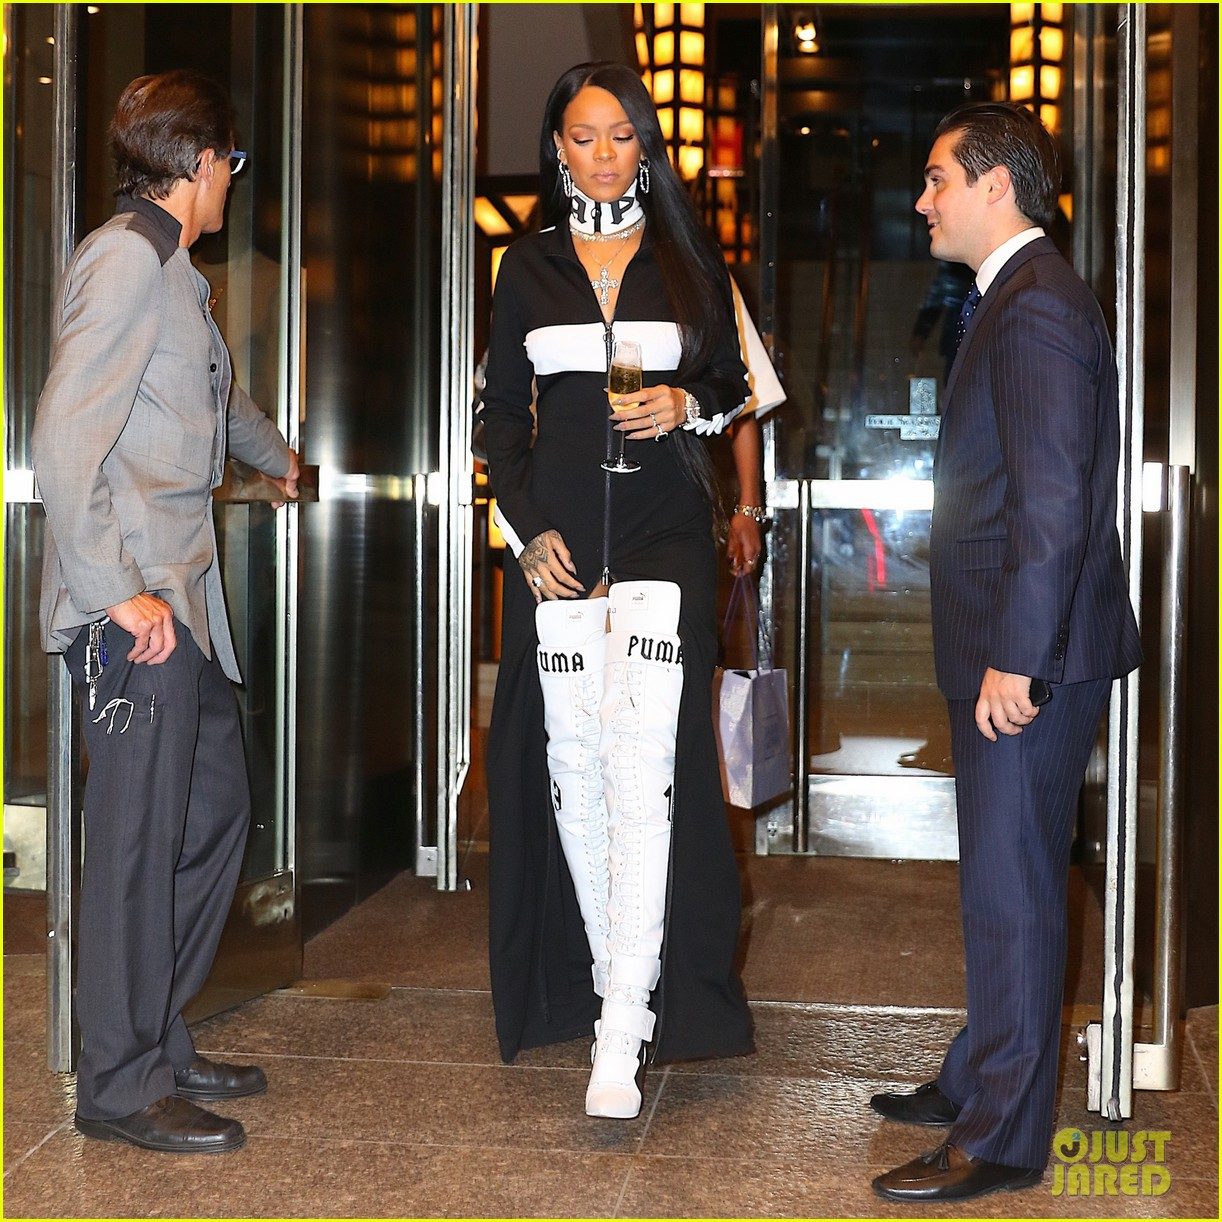 Rihanna Leaves Her Pop-Up Shop with Champagne in Hand  Photo 3751011 ... 43a788f2c409